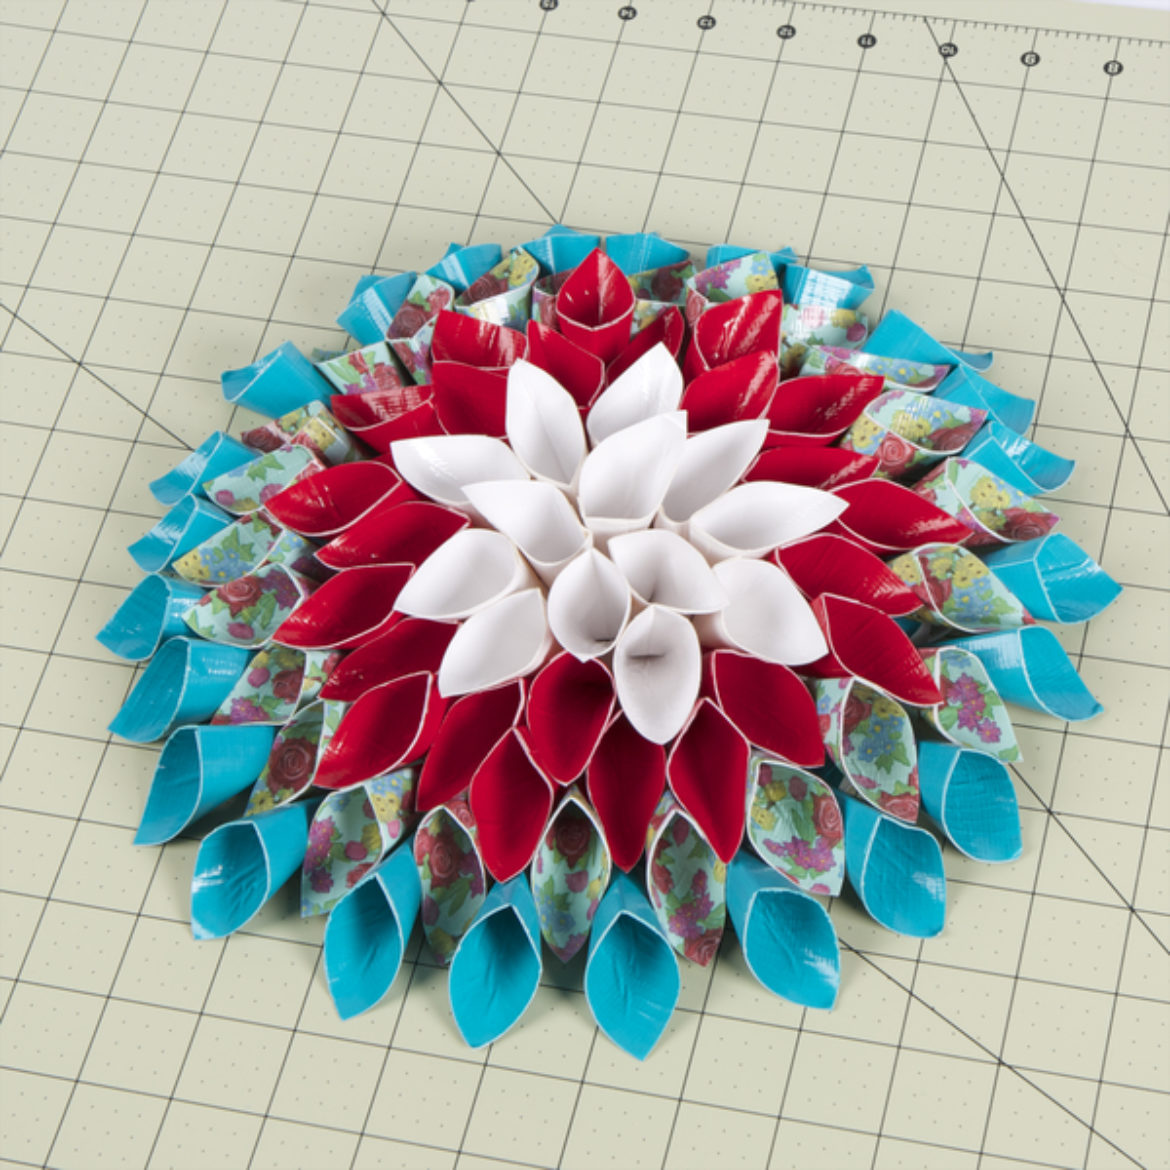 Steps 2-3 repeated until there are rings of cones attached to the circle so that it resembles a flower